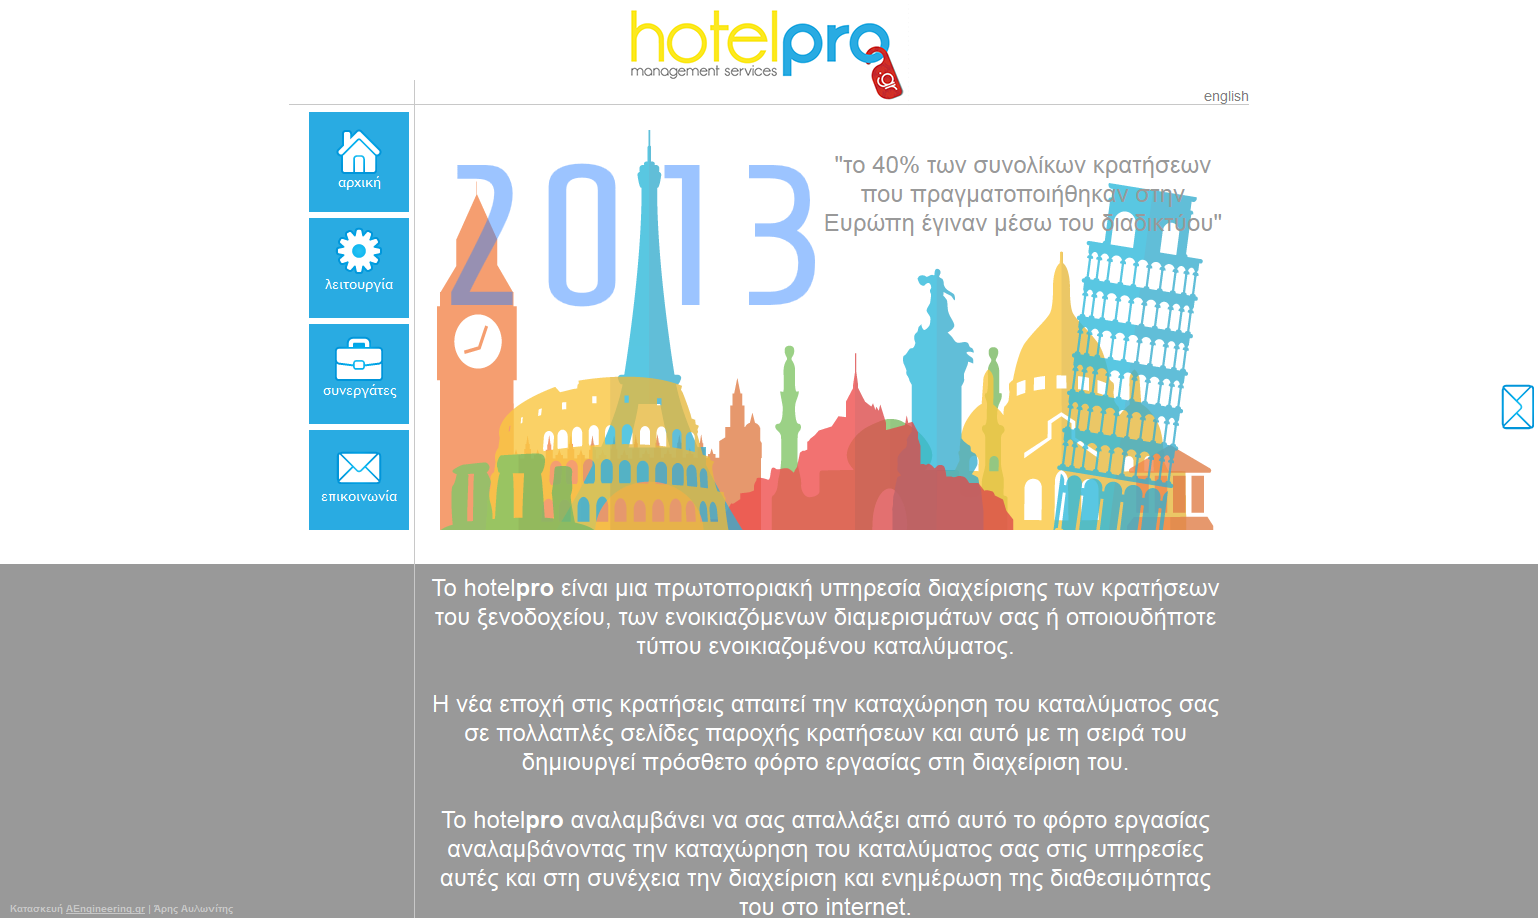 HotelPro.gr